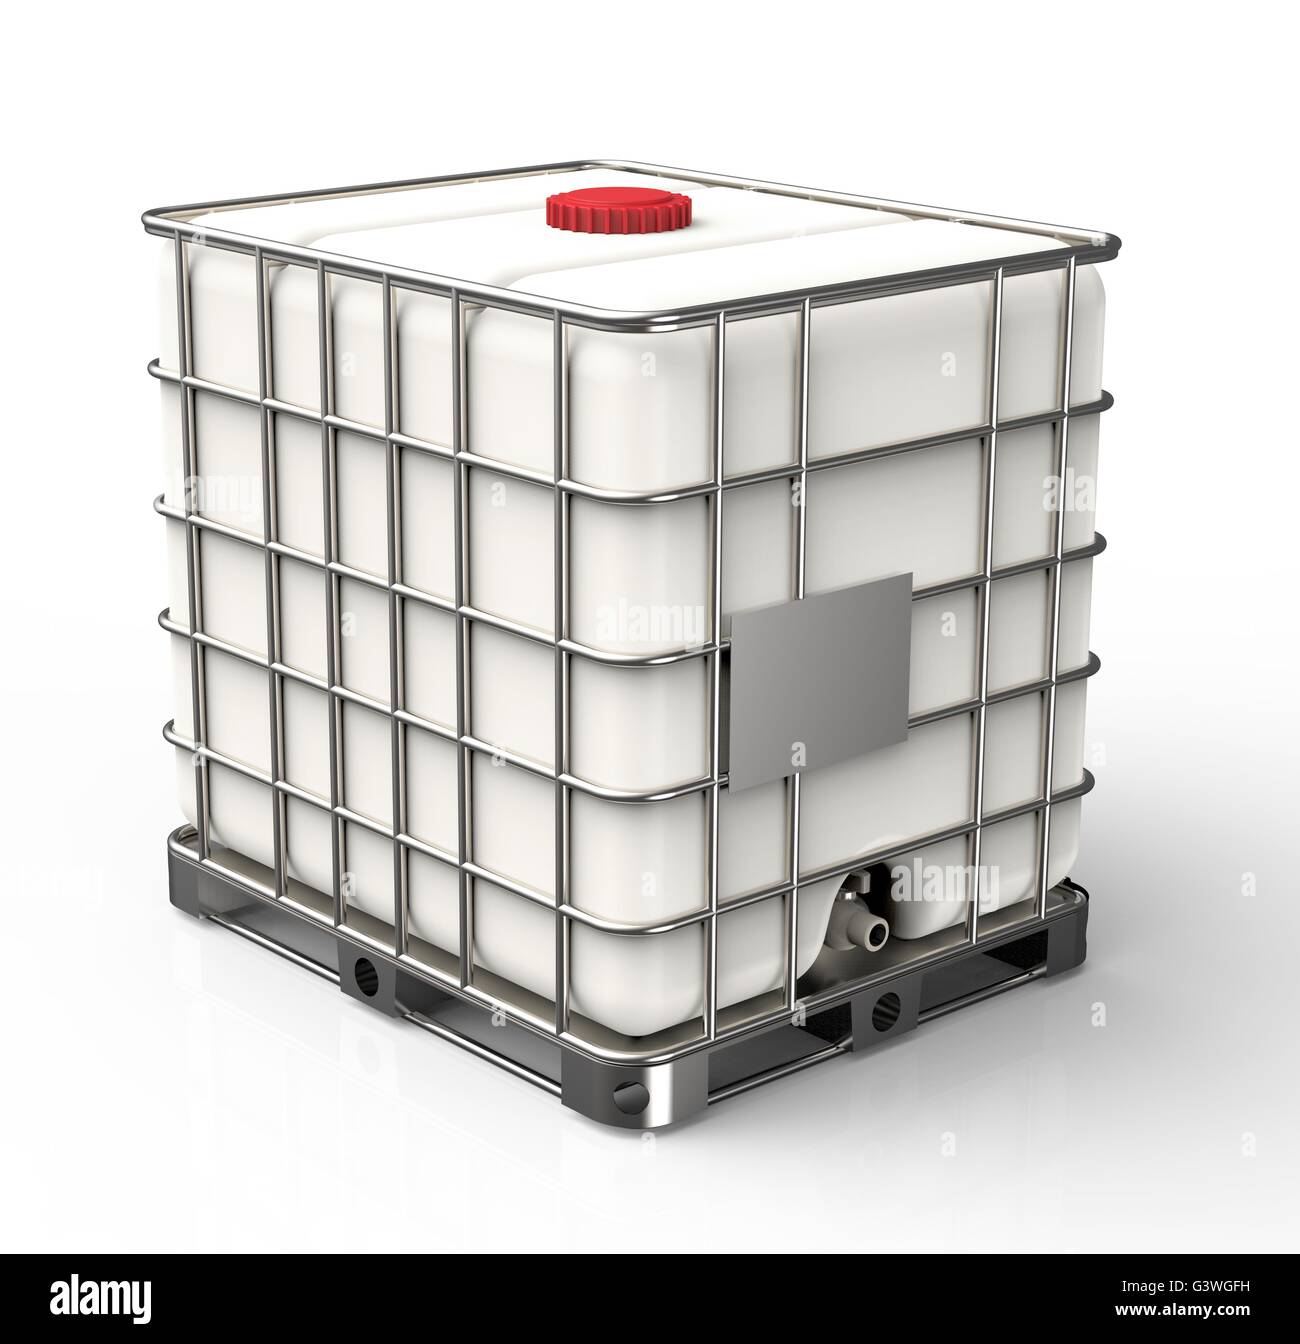 Bulk liquid container isolated on a white background - Stock Image